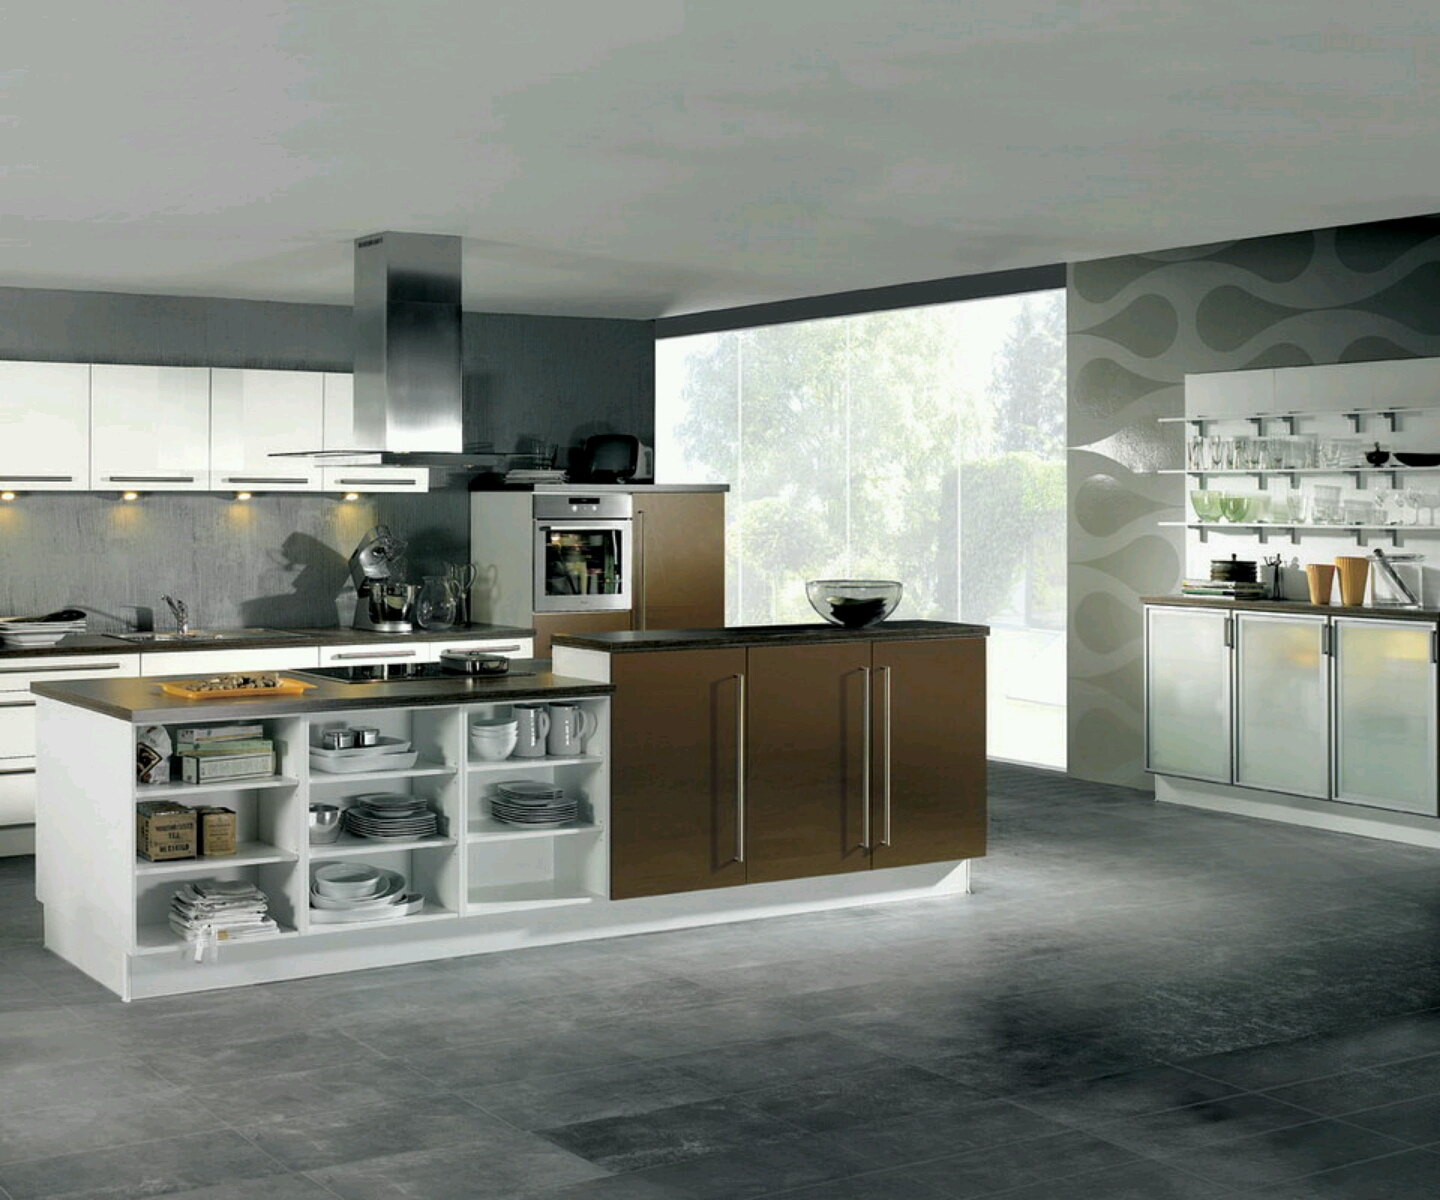 Ultra modern kitchen designs ideas modern home designs for Home kitchen design ideas